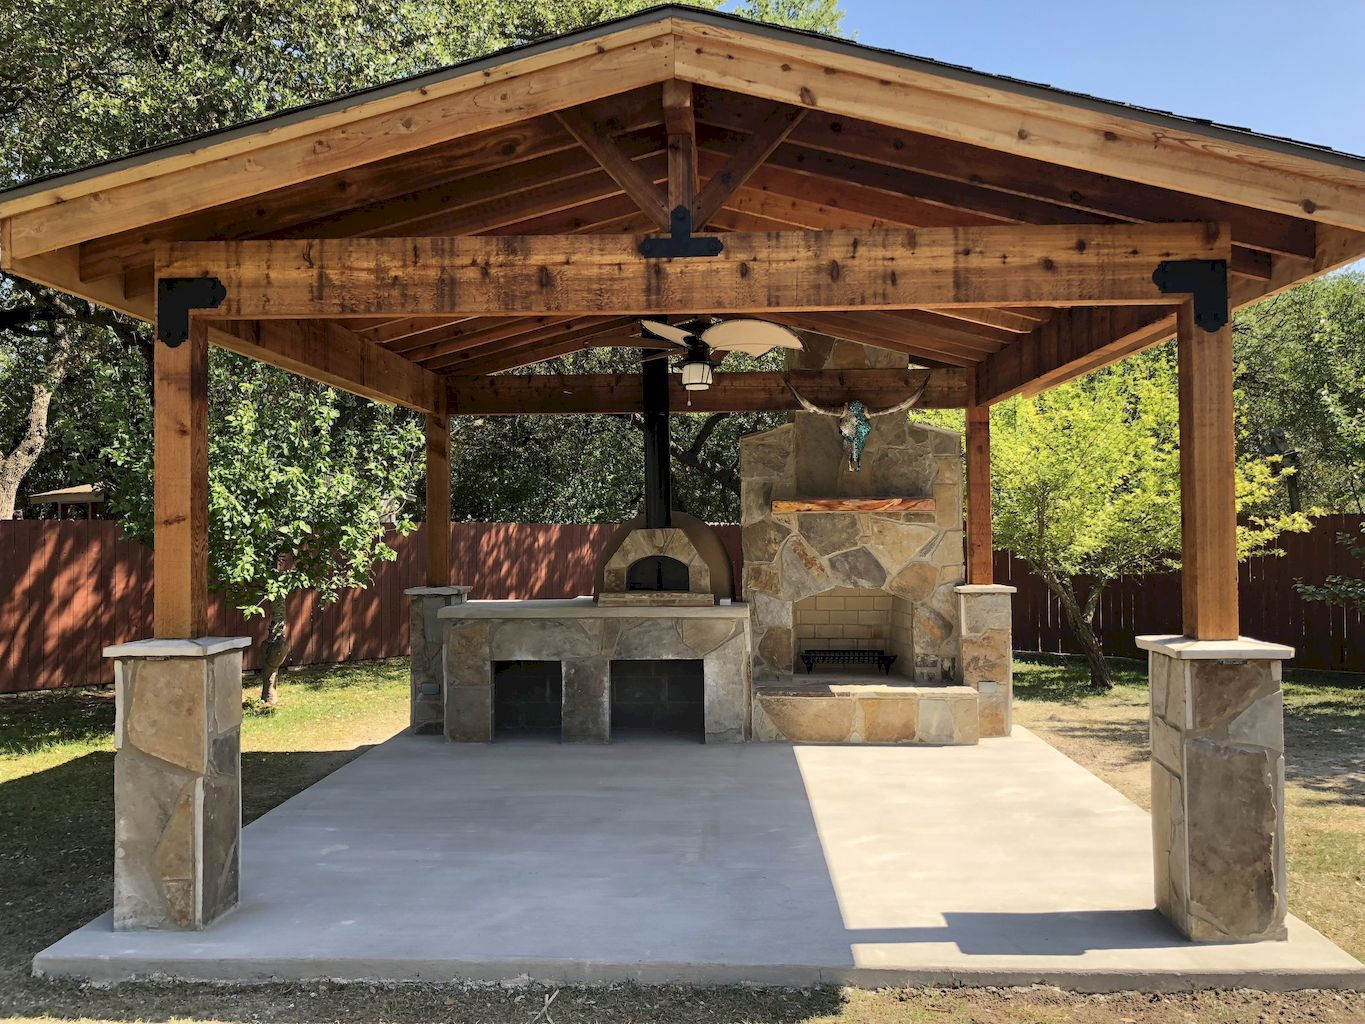 Cool 85 Incredible Outdoor Kitchen Design Ideas For Summer Source Https Wholehomekover Com 8 Backyard Pavilion Outdoor Kitchen Patio Backyard Patio Designs